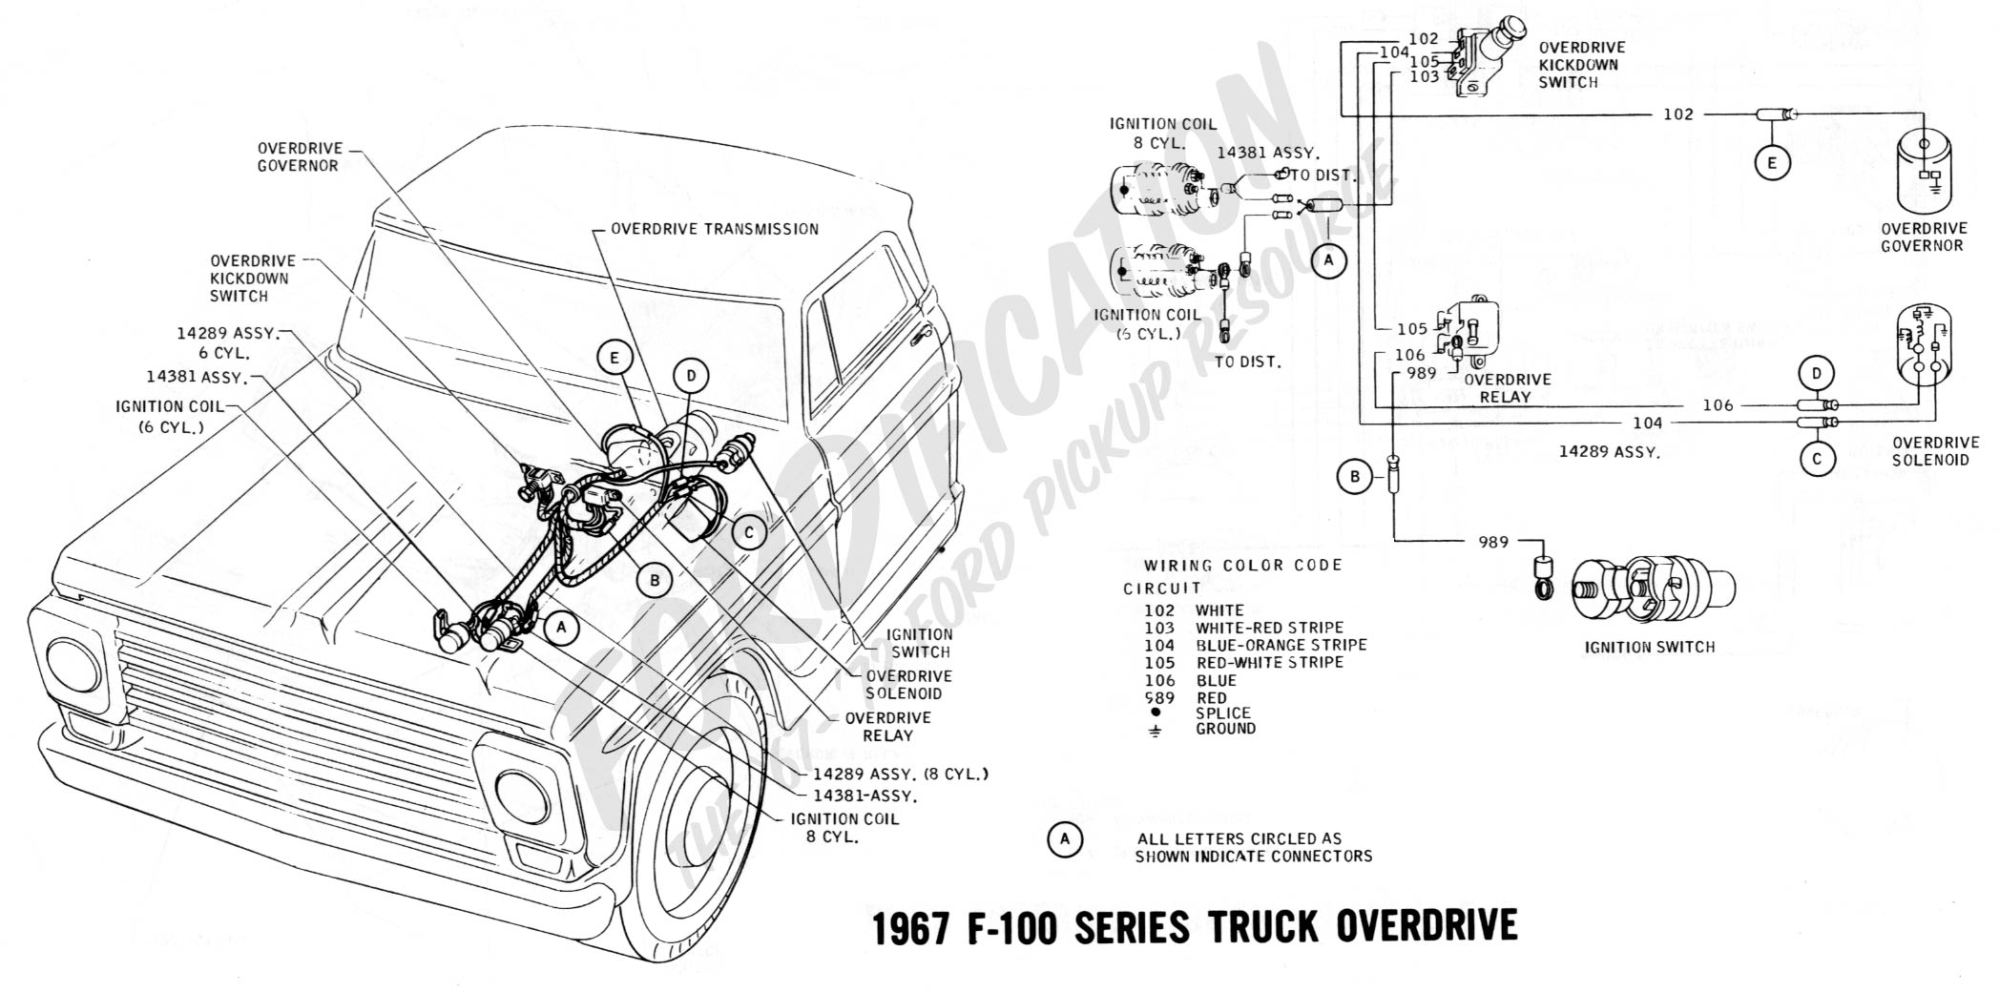 hight resolution of 1962 chevy c10 steering column wiring diagram wiring diagram 1967 c10 rear suspension 1962 chevrolet steering